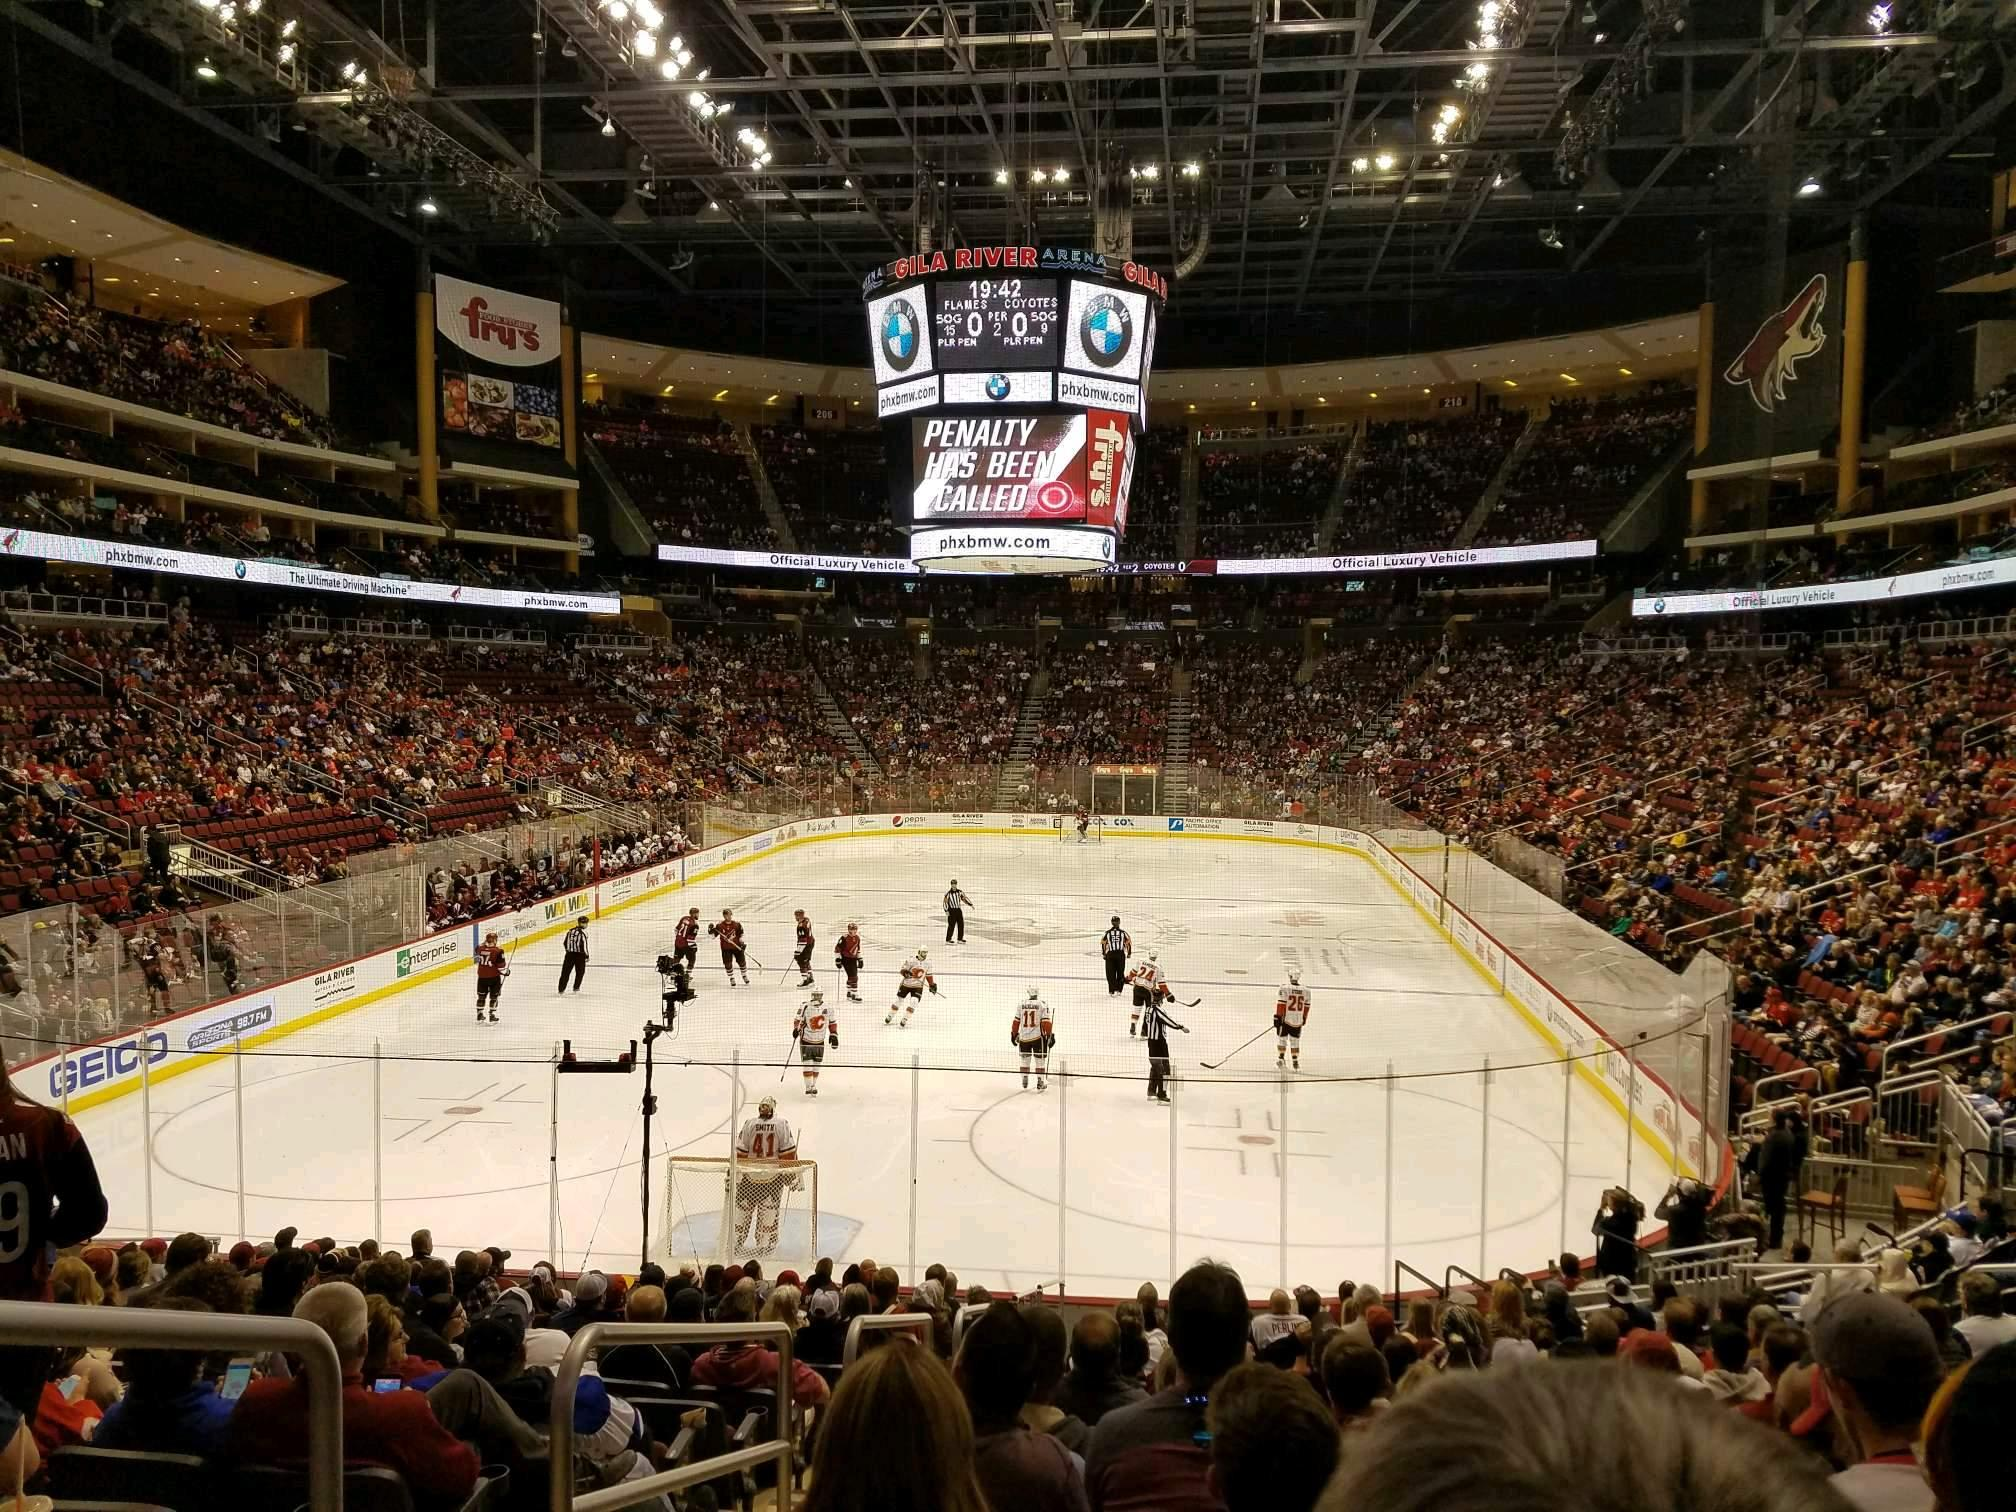 Gila River Arena Section 116 Row R Seat 22